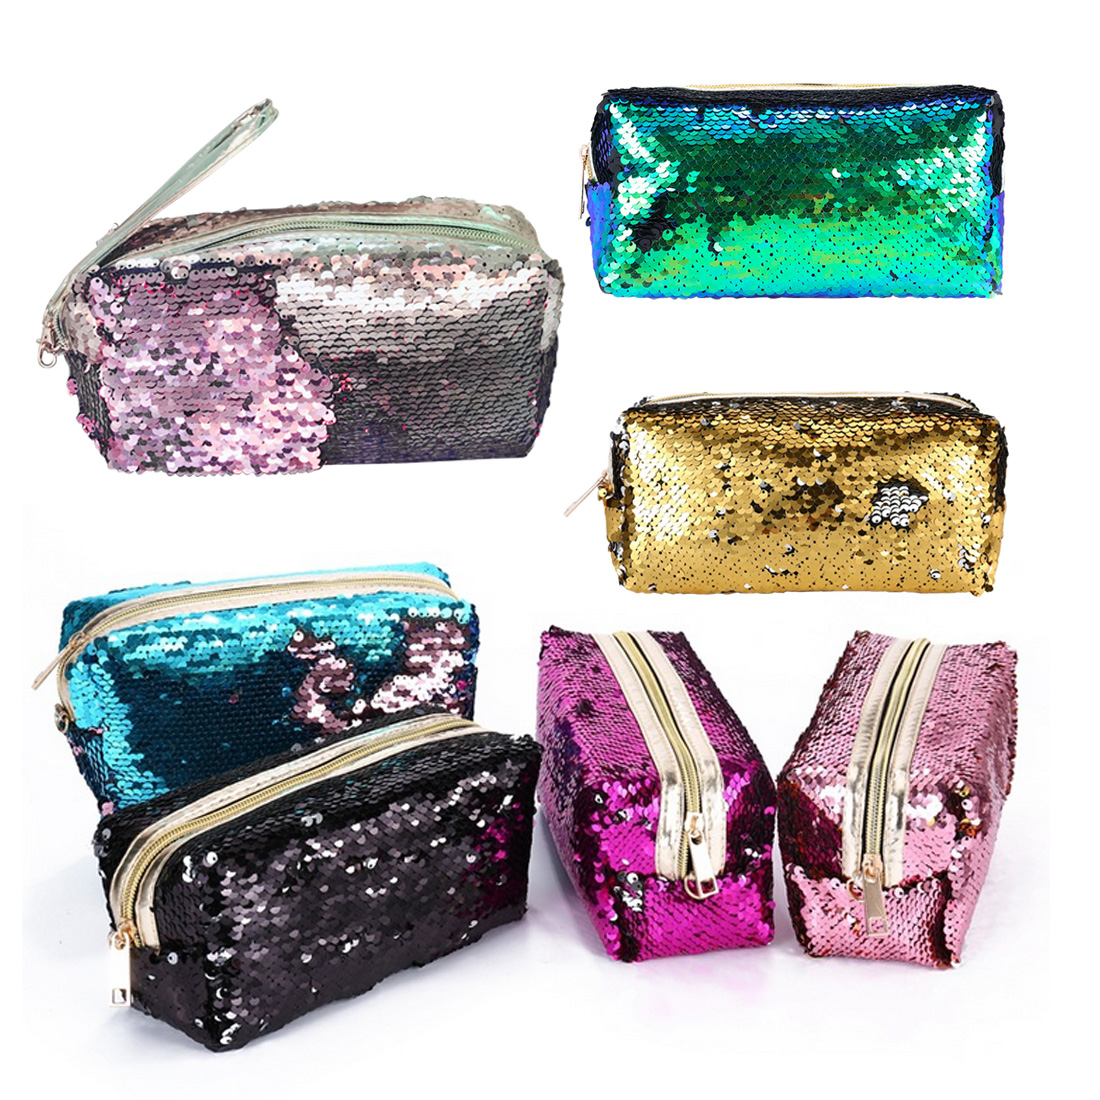 New High Quality Glitter Mermaid Sequins Laser Cosmetic Bag Fashion Student Sequin Pencil Case Ladies Coin Purse Storage Bags student navy canvas pen pencil case high quality stripes coin purse fashion zipper pouch bag new estojo de lapis y